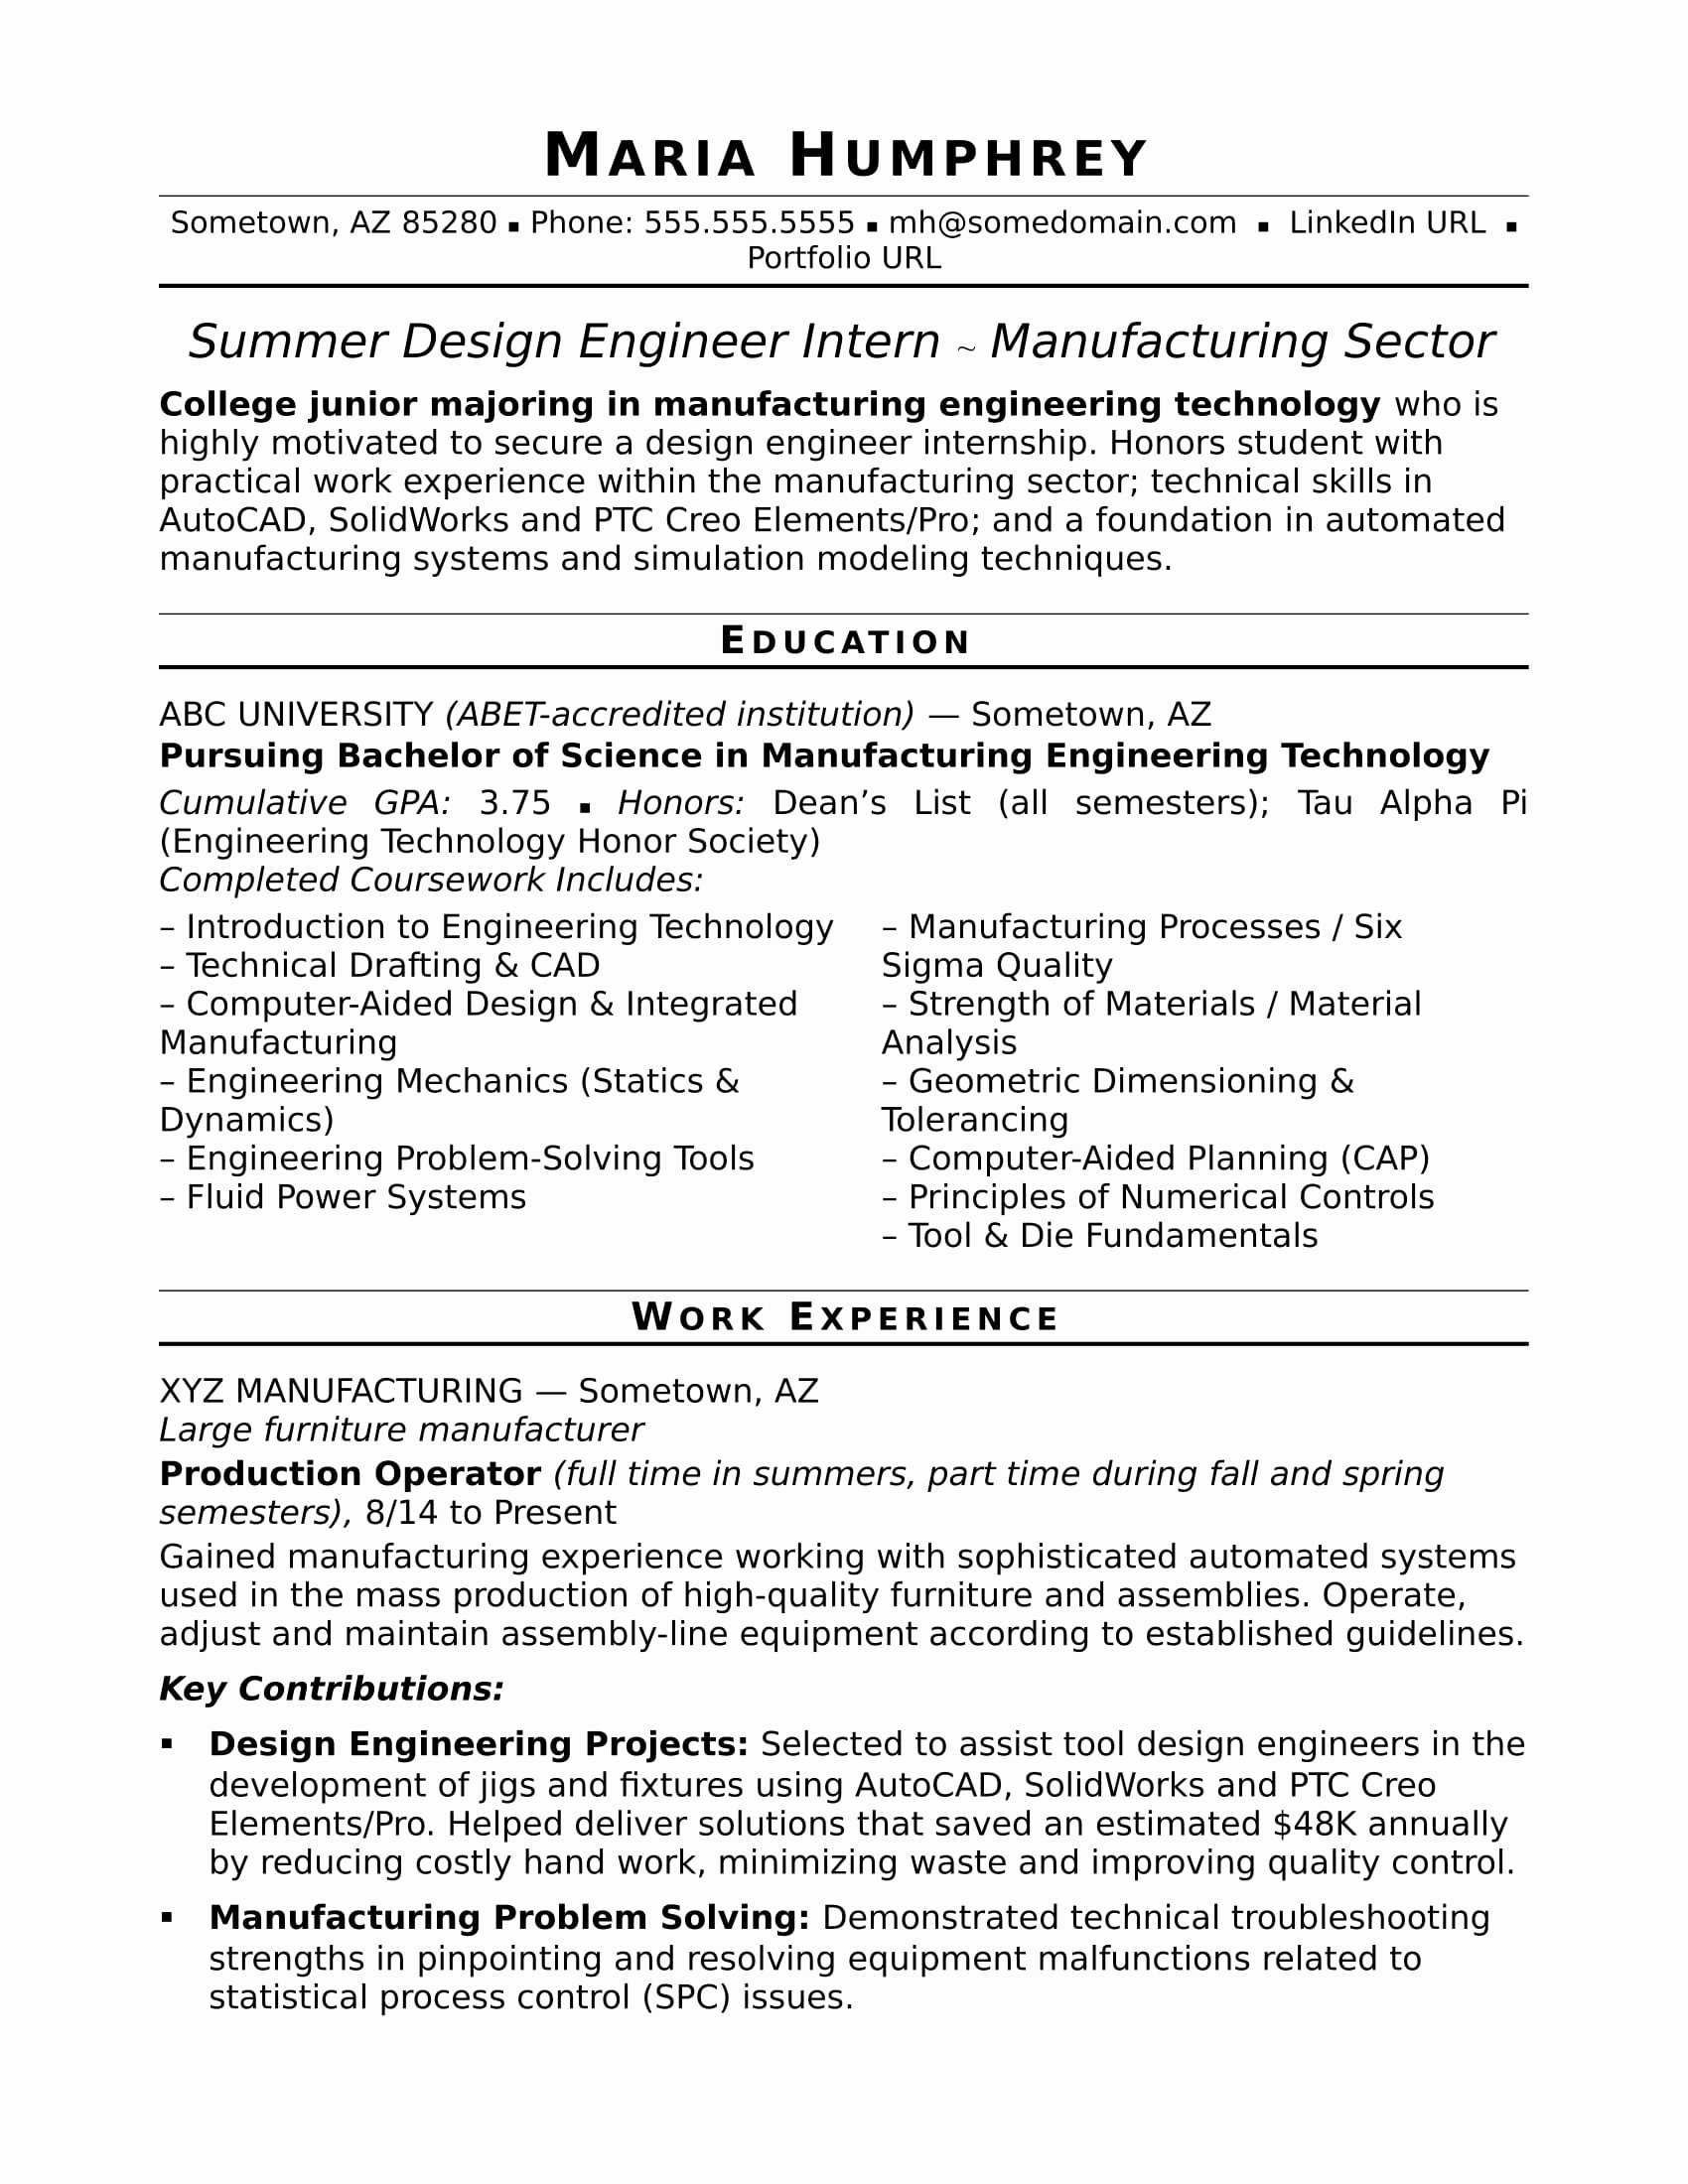 Sample Resume for An Entry Level Design Engineer